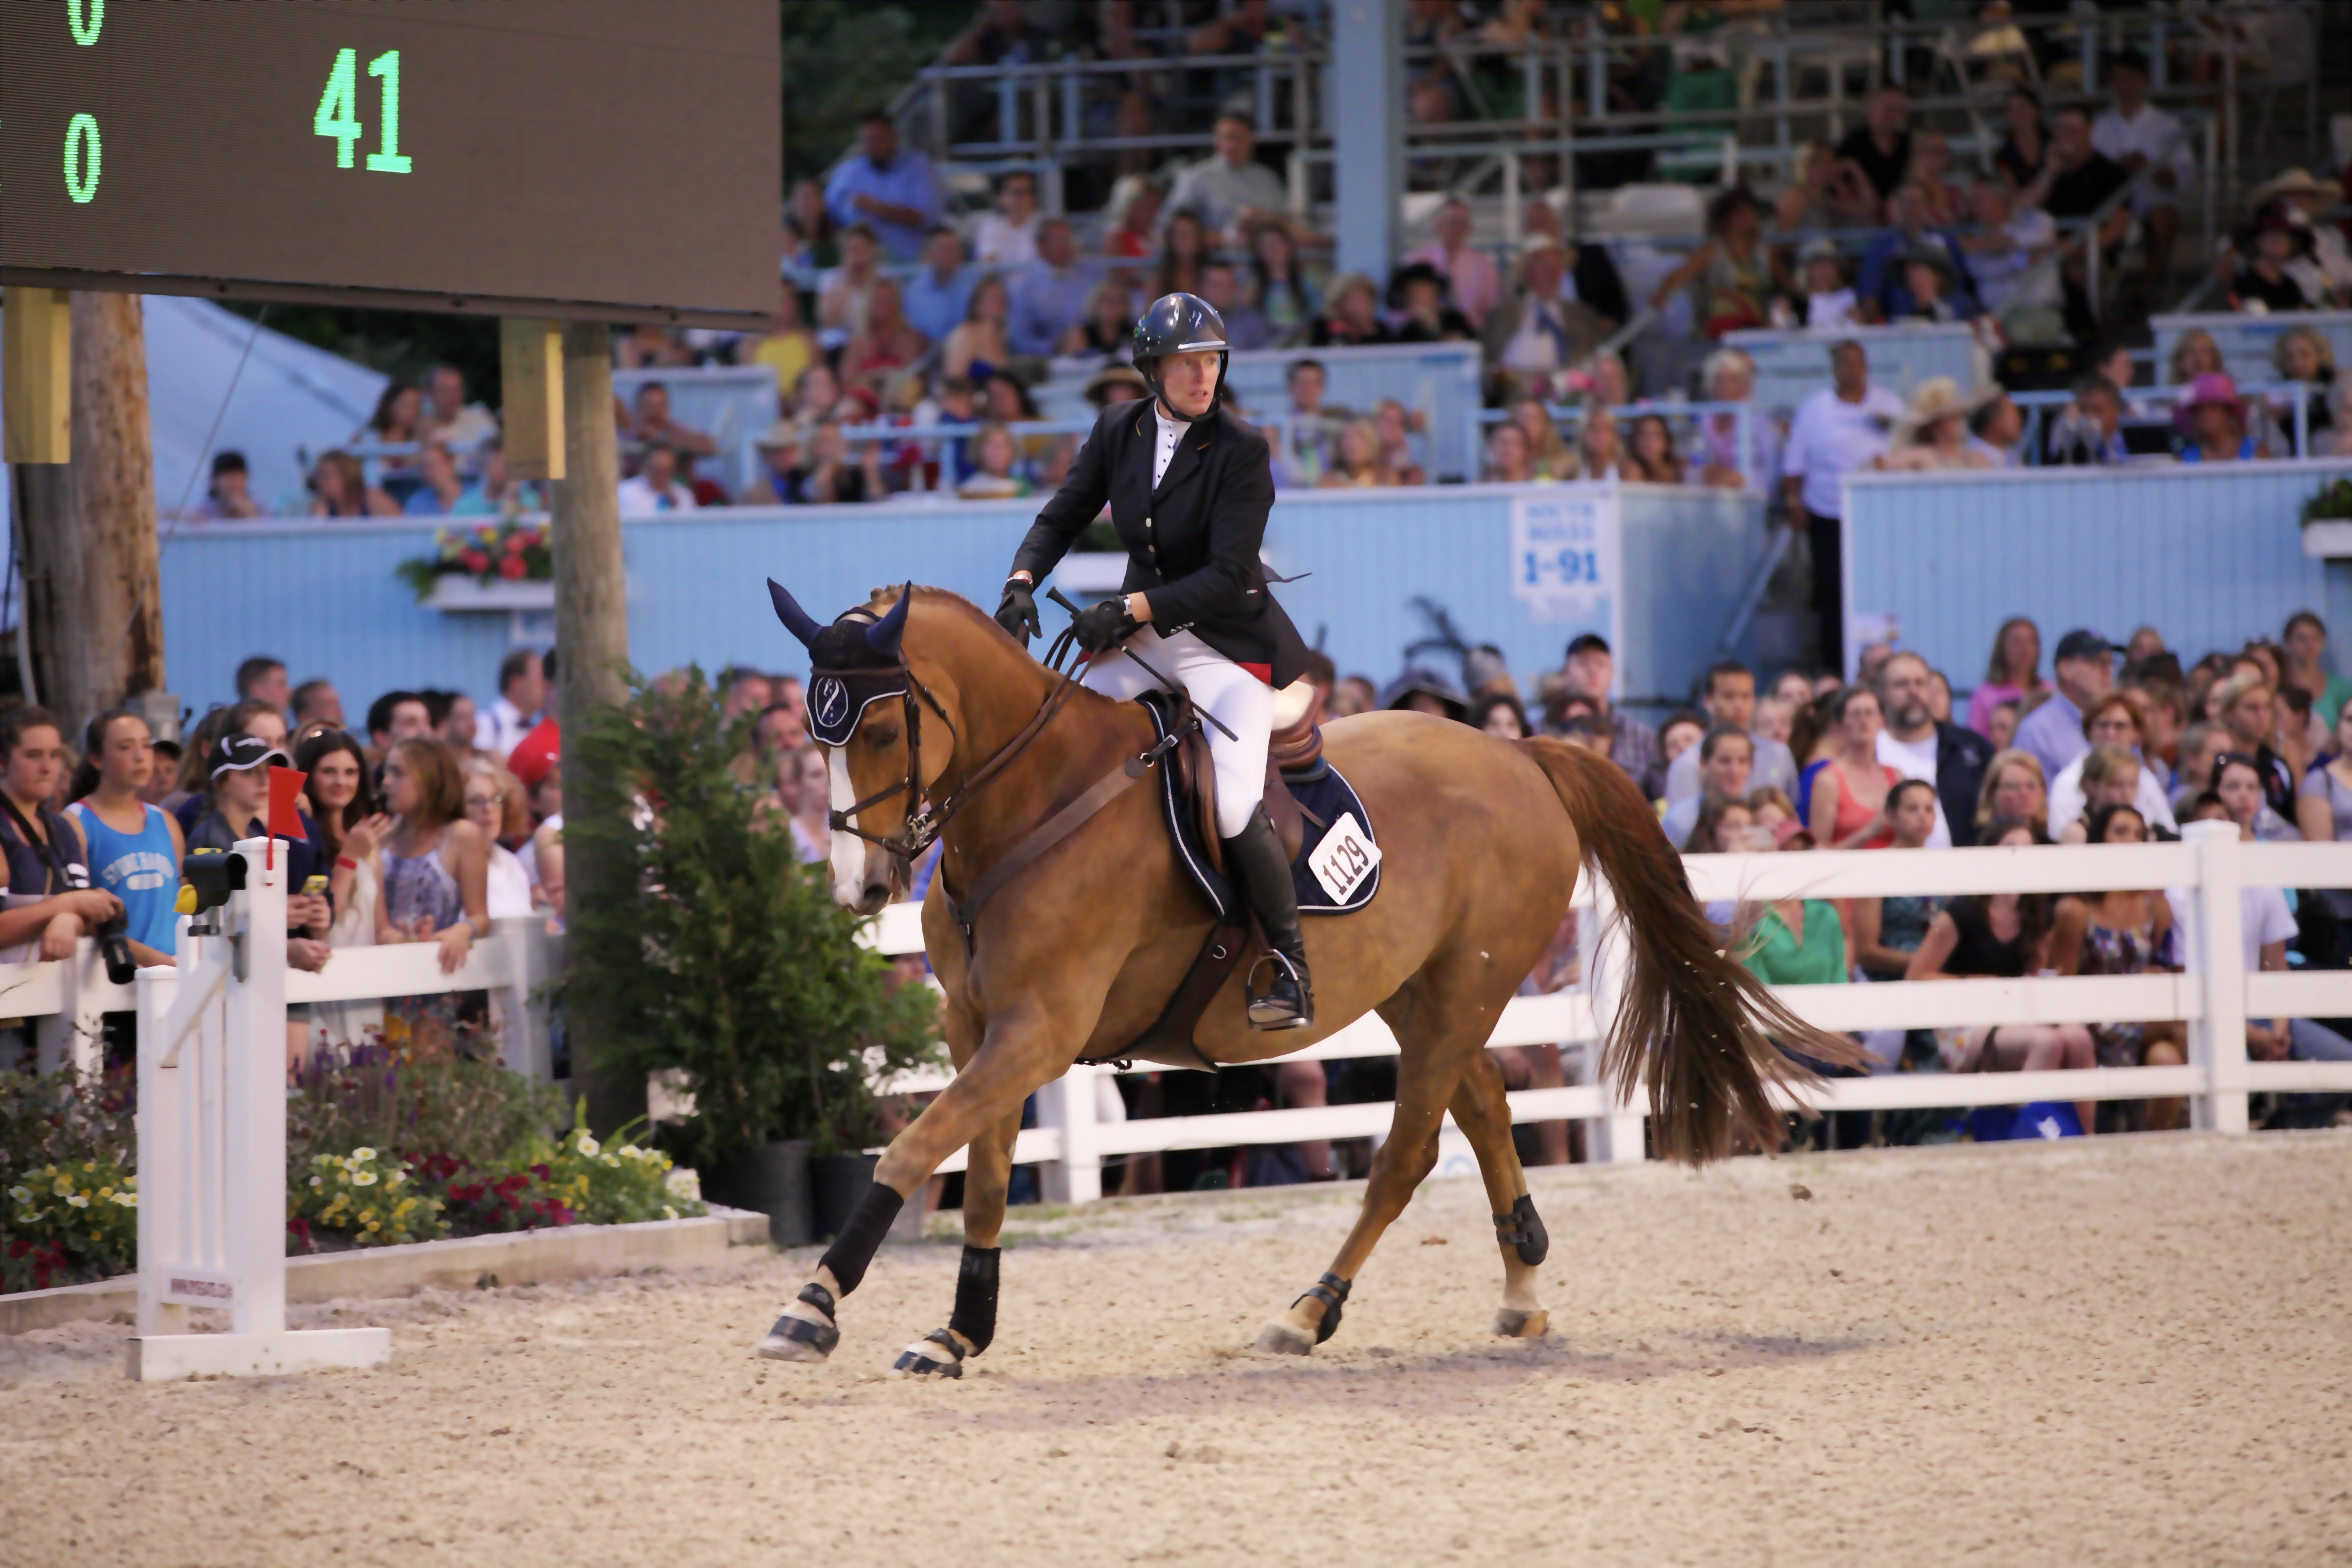 Young Rider Kelli Cruciotti Wins 2015 Devon Grand Prix